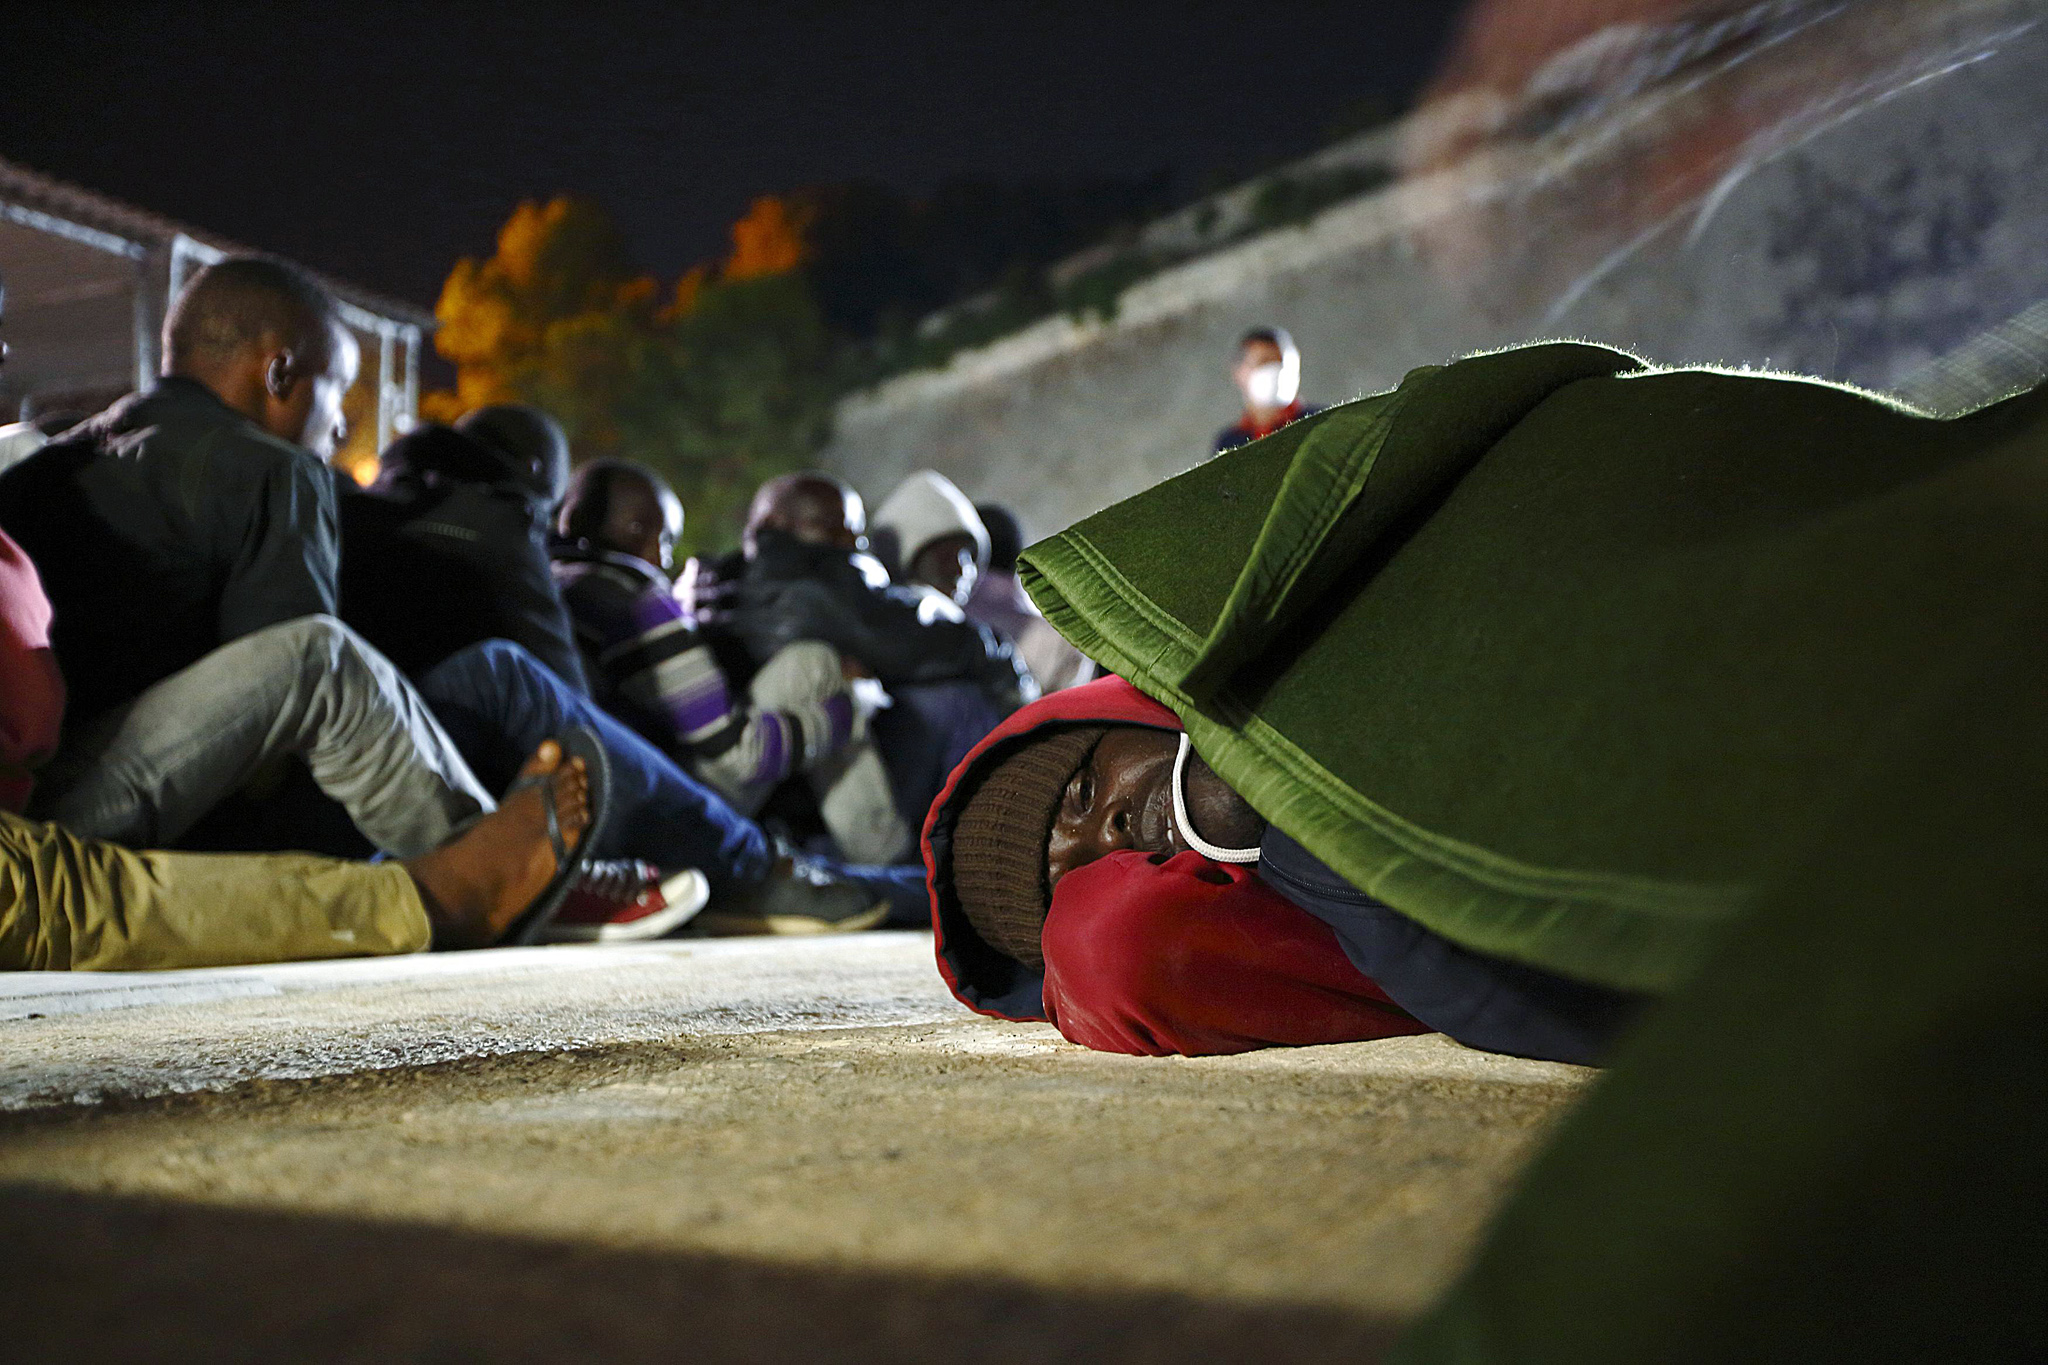 Ill irregular immigrant lies on the ground as a blanket is placed over him at Armed Forces of Malta Maritime Squadron base at Haywharf in Valletta's Marsamxett Harbour...An ill irregular immigrant lies on the ground as a blanket is placed over him at the Armed Forces of Malta (AFM) Maritime Squadron base at Haywharf in Valletta's Marsamxett Harbour, early June 8, 2014. A group of 130 Sub-Saharan African migrants were rescued by the AFM south of the Maltese islands when their boat ran into difficulties, according to army sources.  REUTERS/Darrin Zammit Lupi (MALTA - Tags: SOCIETY IMMIGRATION TPX IMAGES OF THE DAY)